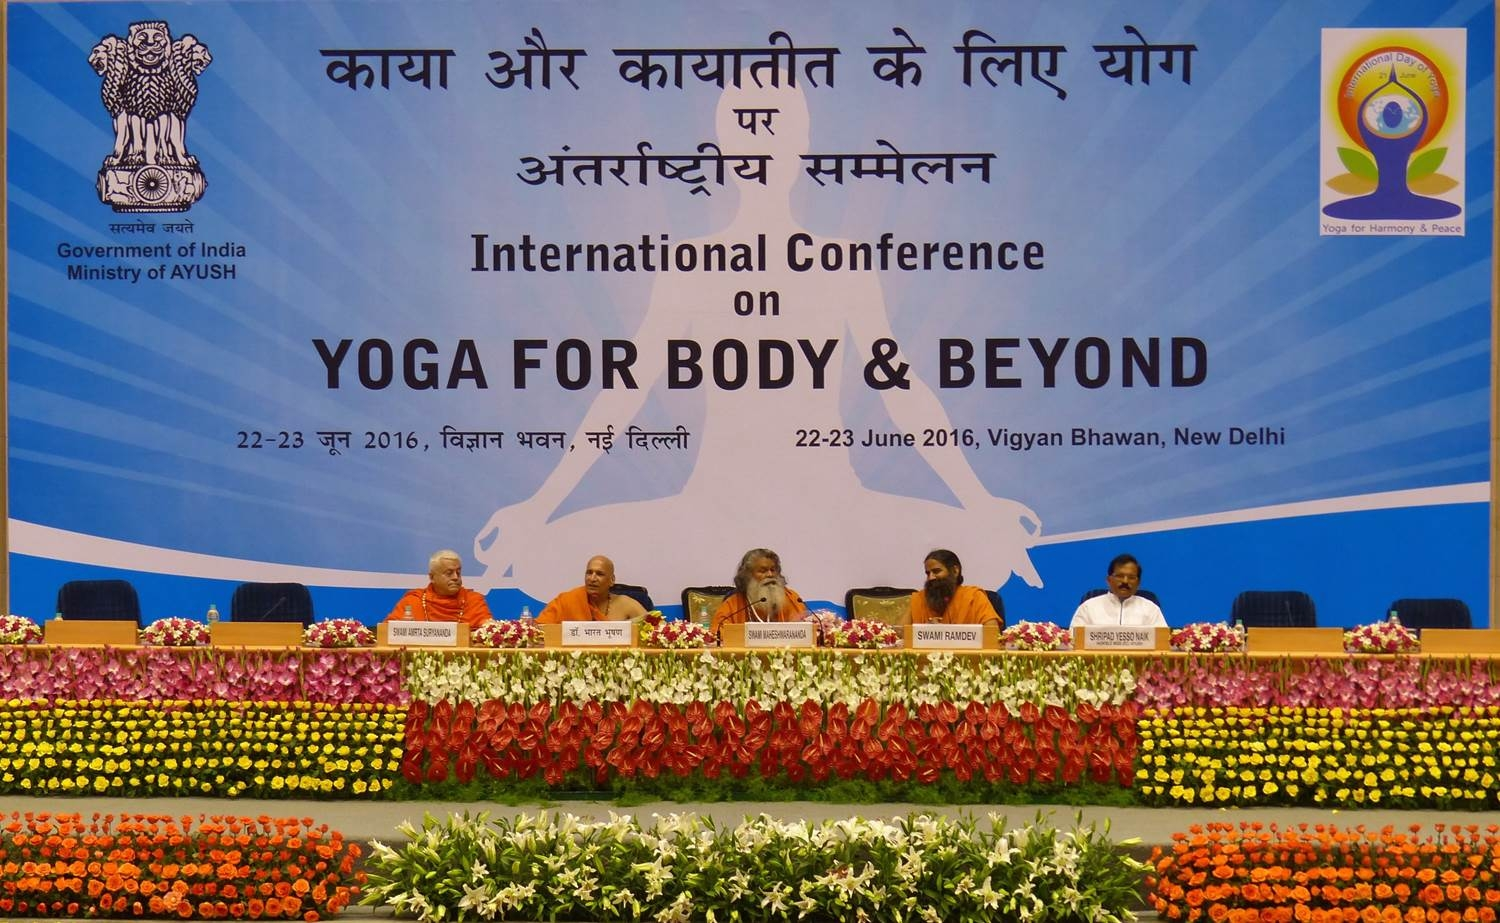 International Day of Yoga / IDY 2016 - International Conference - New Dillí, India - 2016, Junio 22 y 23